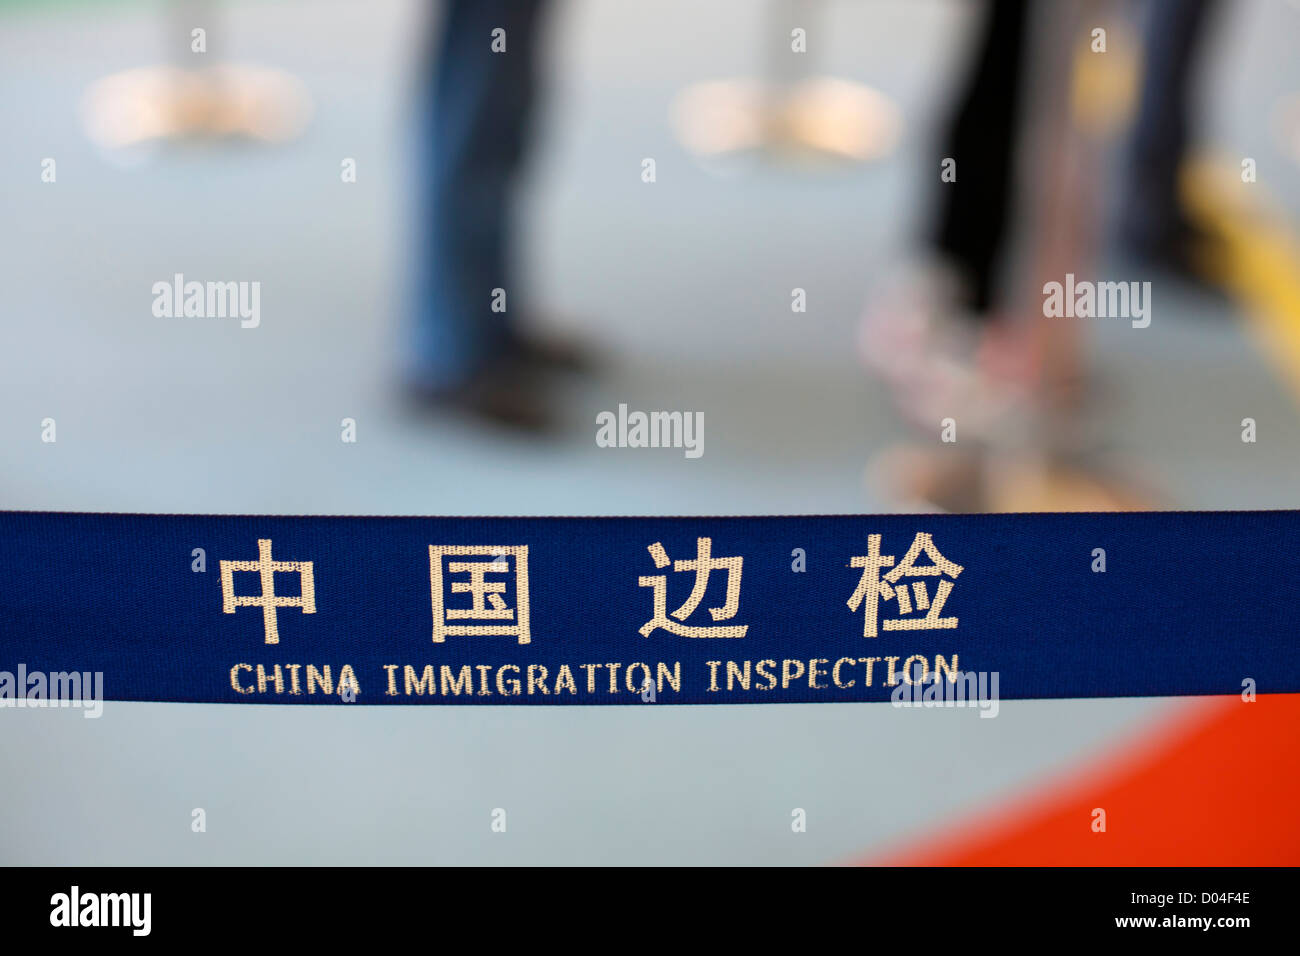 China immigration inspection sign. - Stock Image